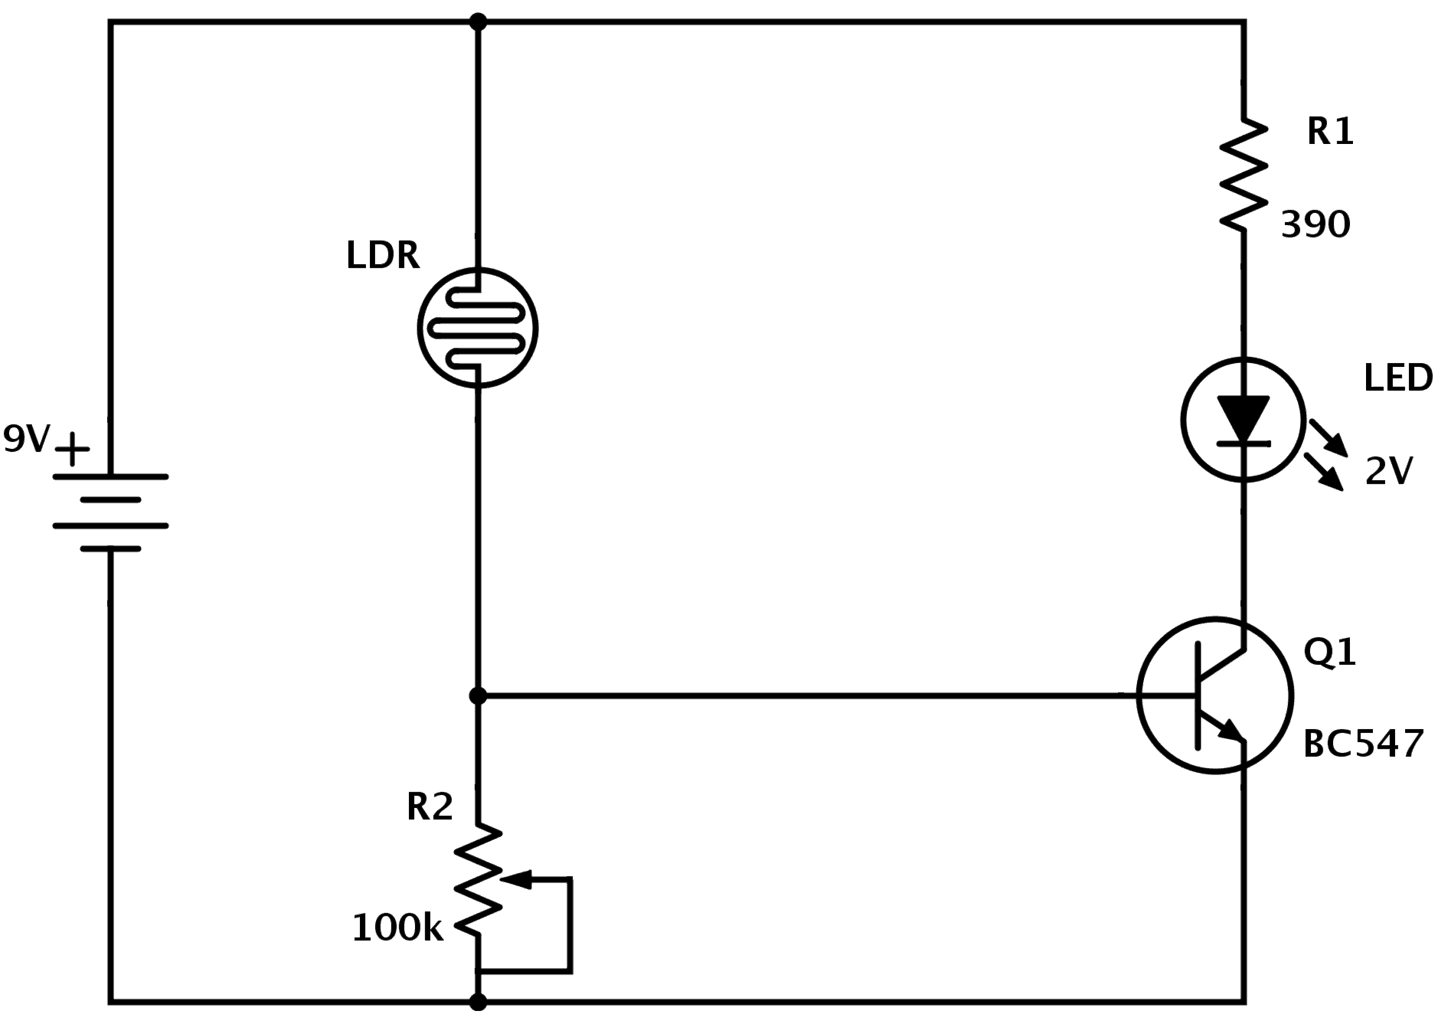 LDR circuit improved circuit diagram how to read and understand any schematic How to Draw a Wiring Diagram ECE at fashall.co